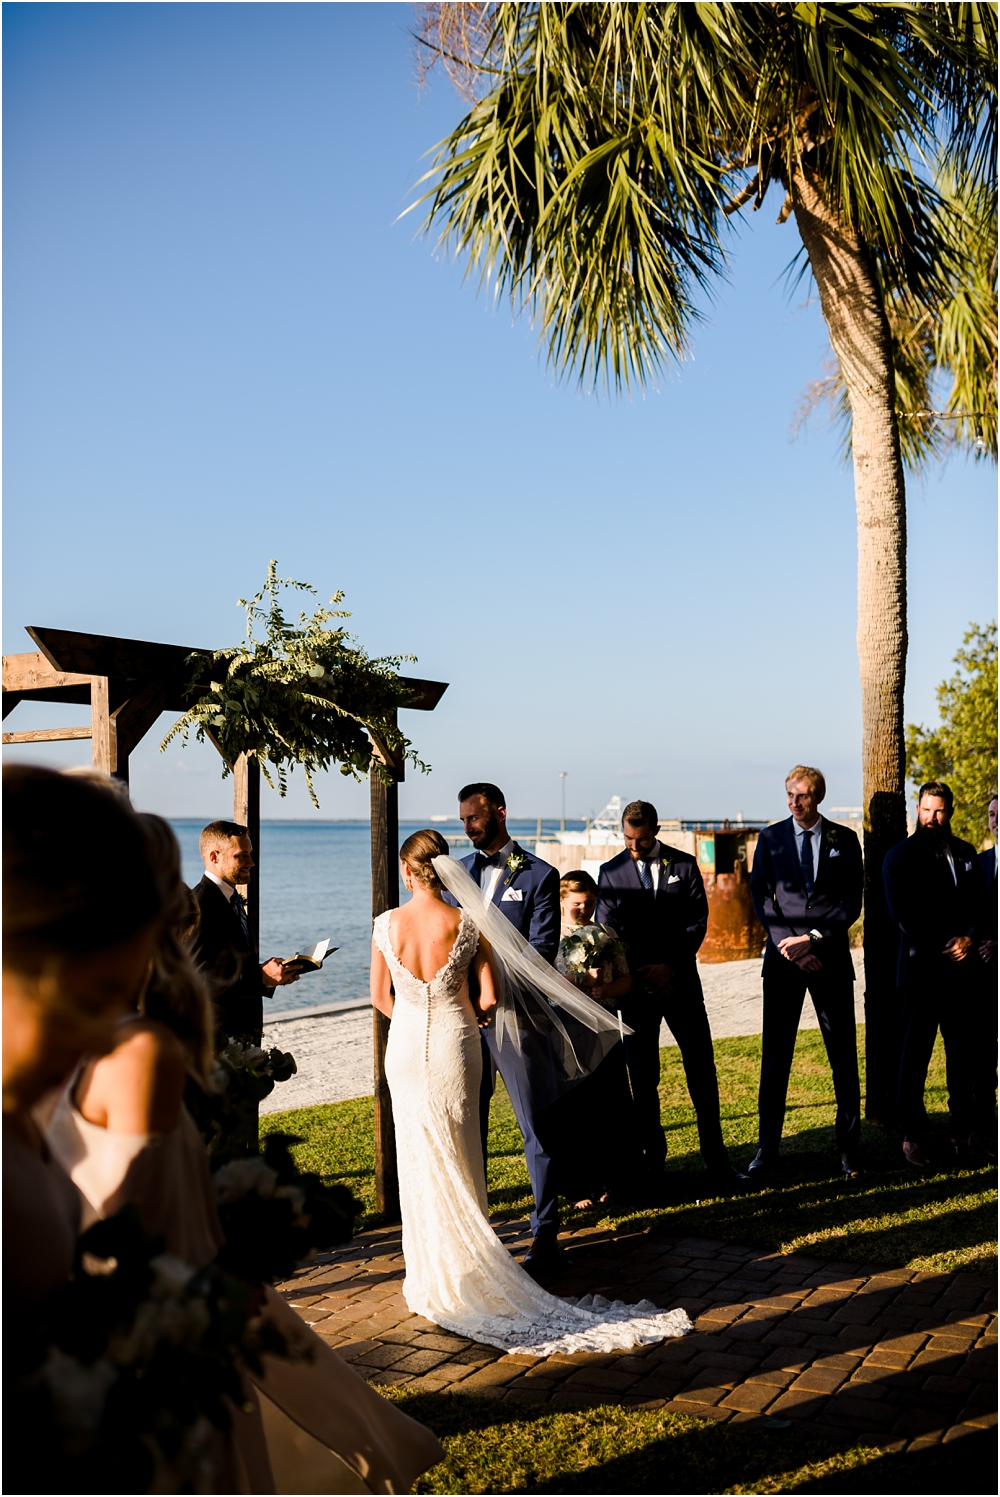 varner-florida-wedding-photographer-30a-panama-city-beach-destin-tallahassee-kiersten-grant-photography-91.jpg